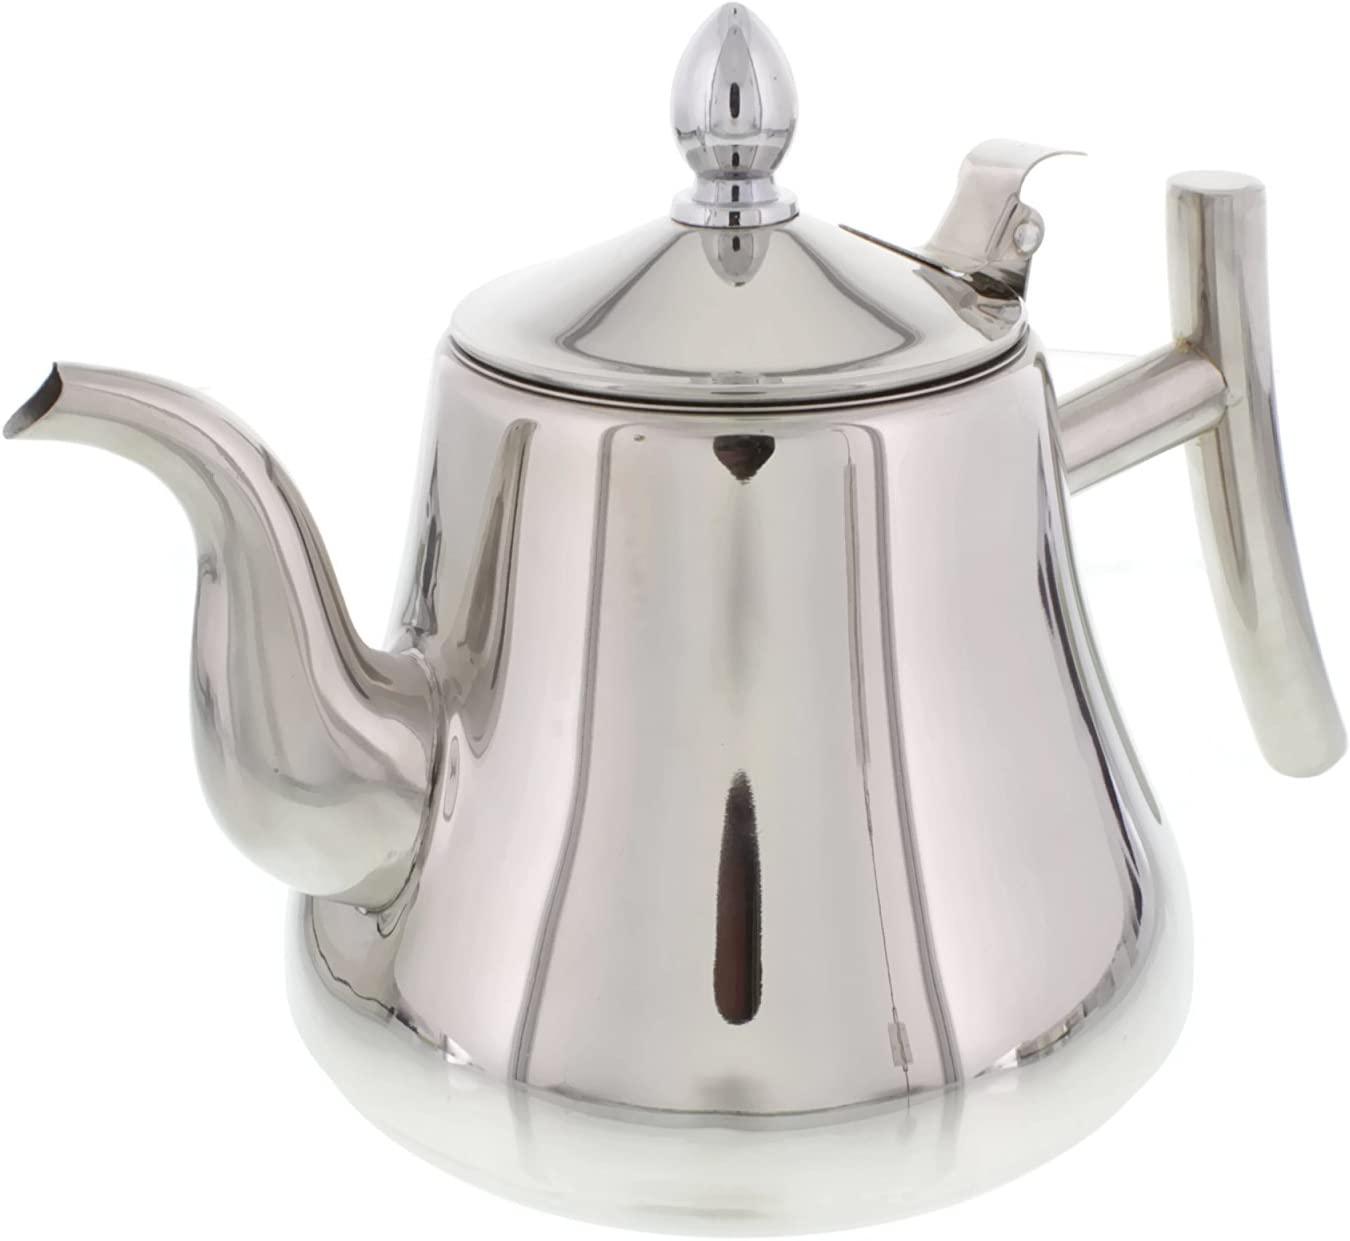 Cheftor 51-oz/1.5-Liter Polished Stainless Steel Teapot Kettle pot with Tea Infuser Filter for Home Kitchen, Restaurant or Office, Pointy shape